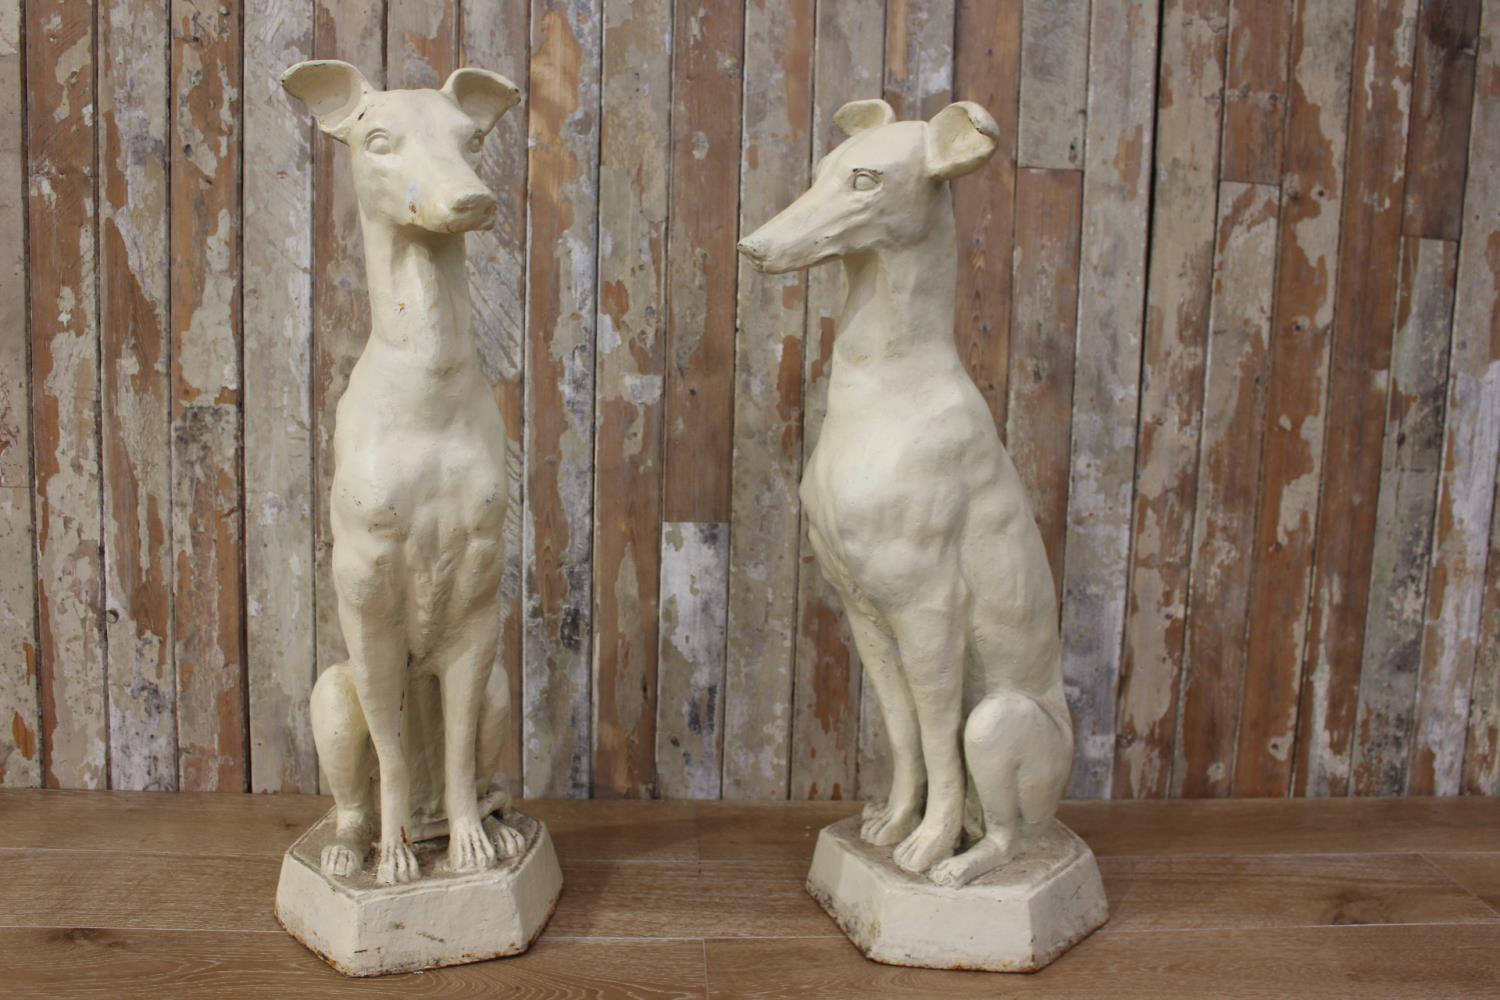 Pair of cast iron models of whippet dogs